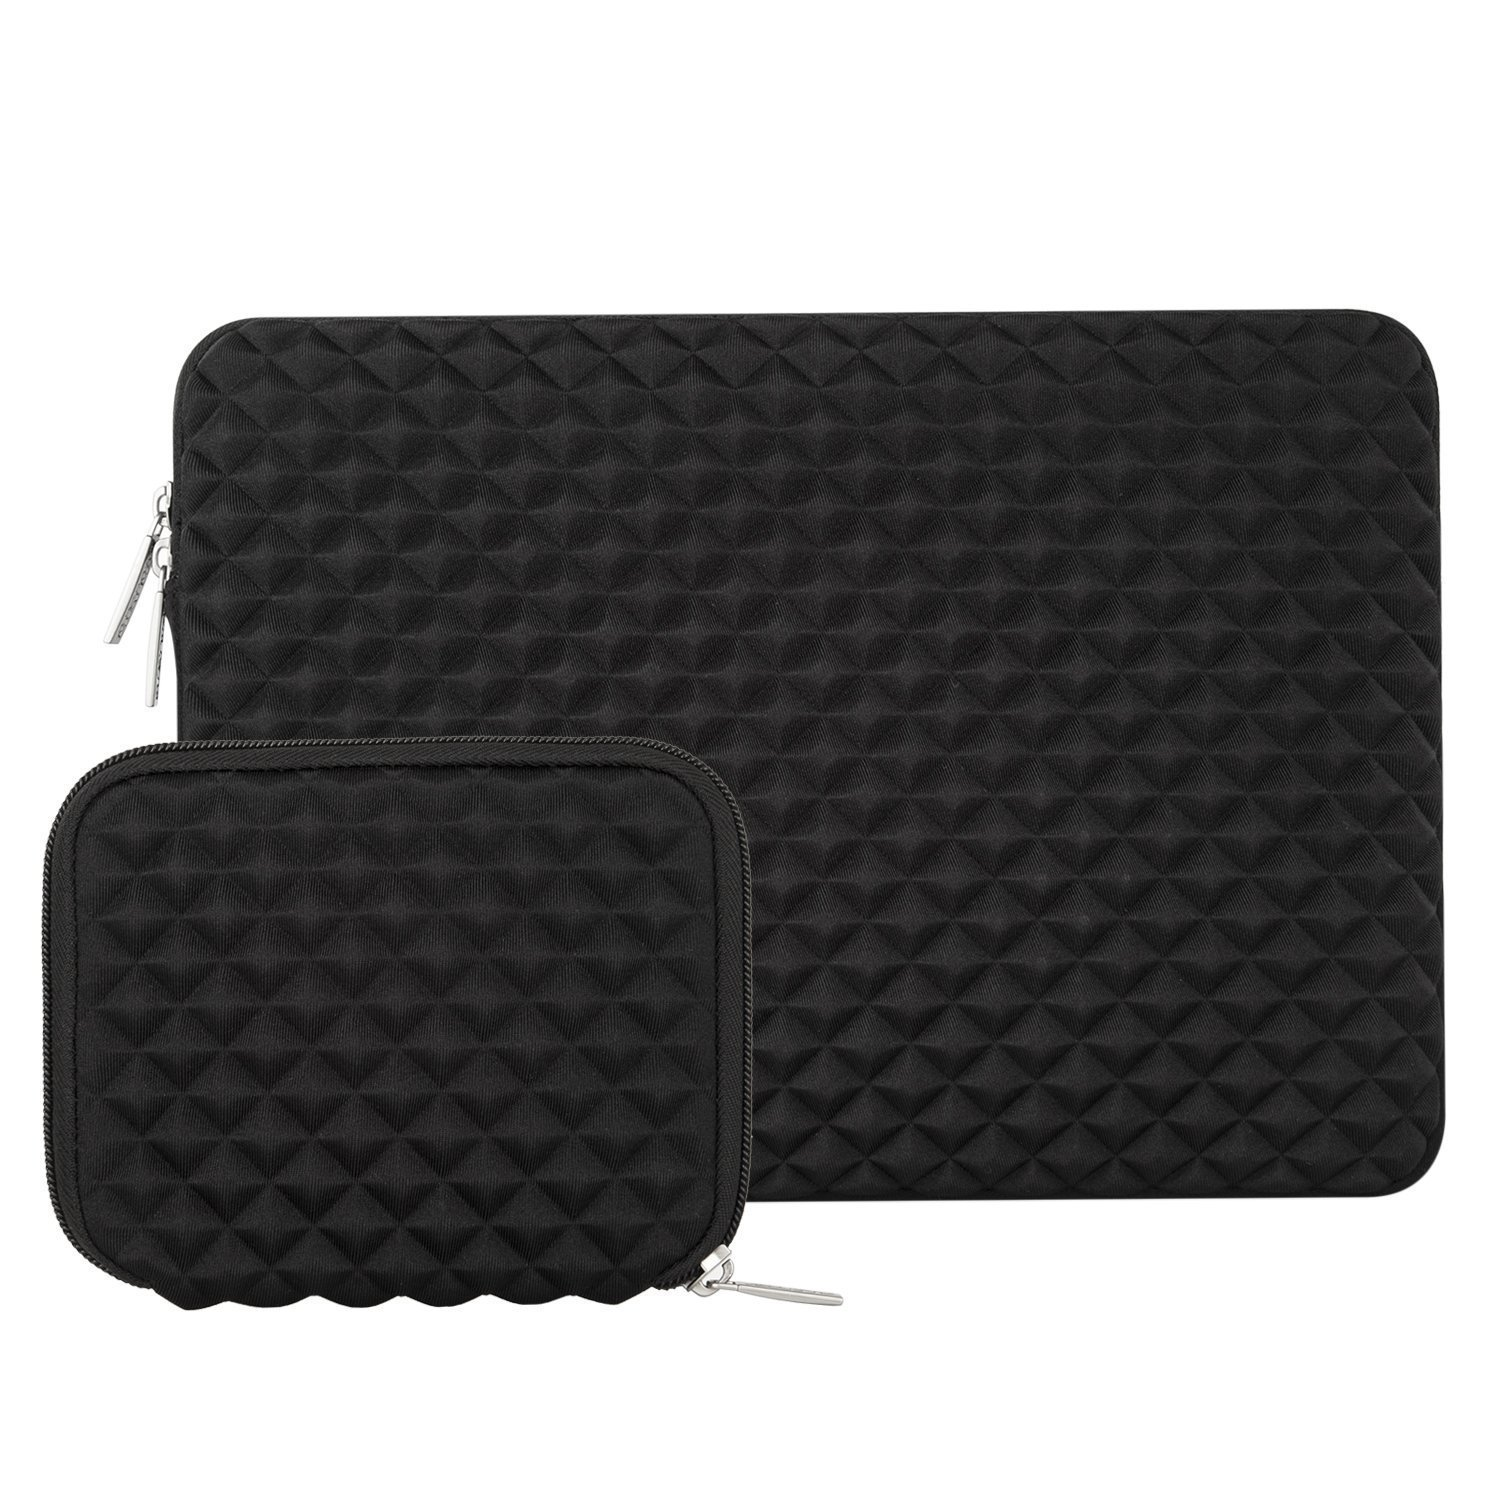 14 Inch ThinkPad Chromebook Diamond Foam Water Repellent Neoprene Bag MOSISO Laptop Sleeve Compatible with 15 Inch MacBook Pro Touch Bar A1990 A1707 2016-2019 with Small Case Black